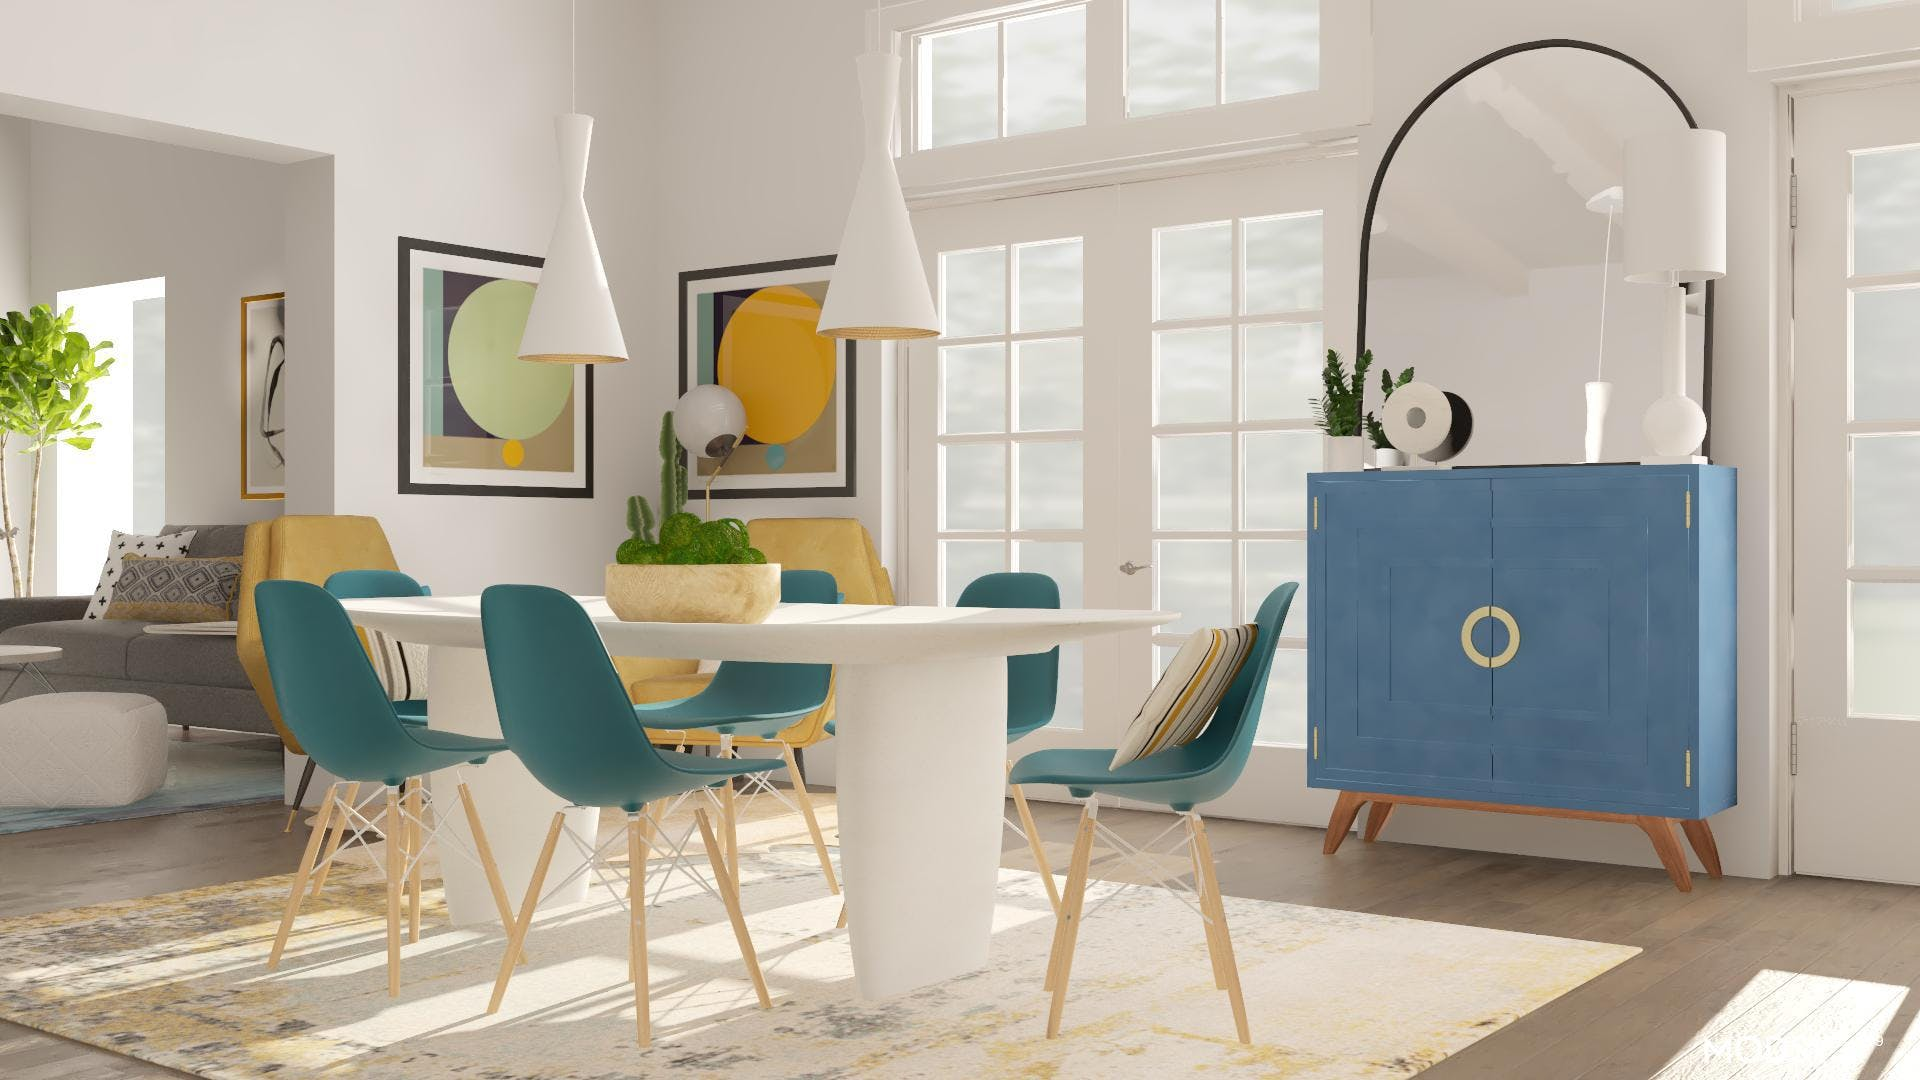 A Mid-Century Dining Room With Bold Colors